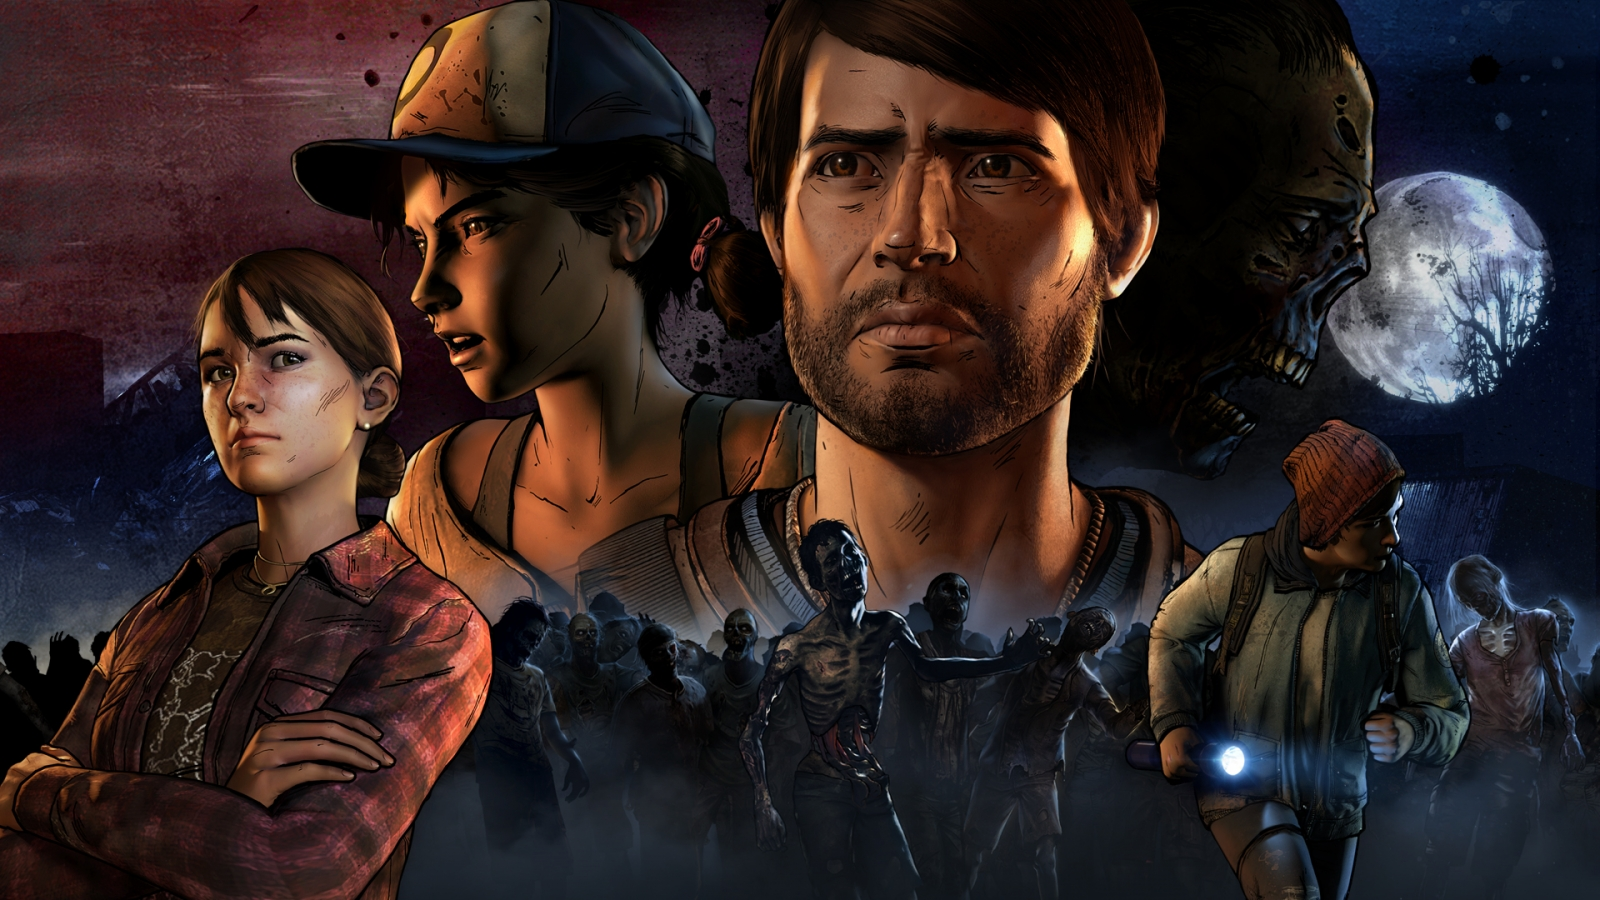 Telltale's The Walking Dead Season 3